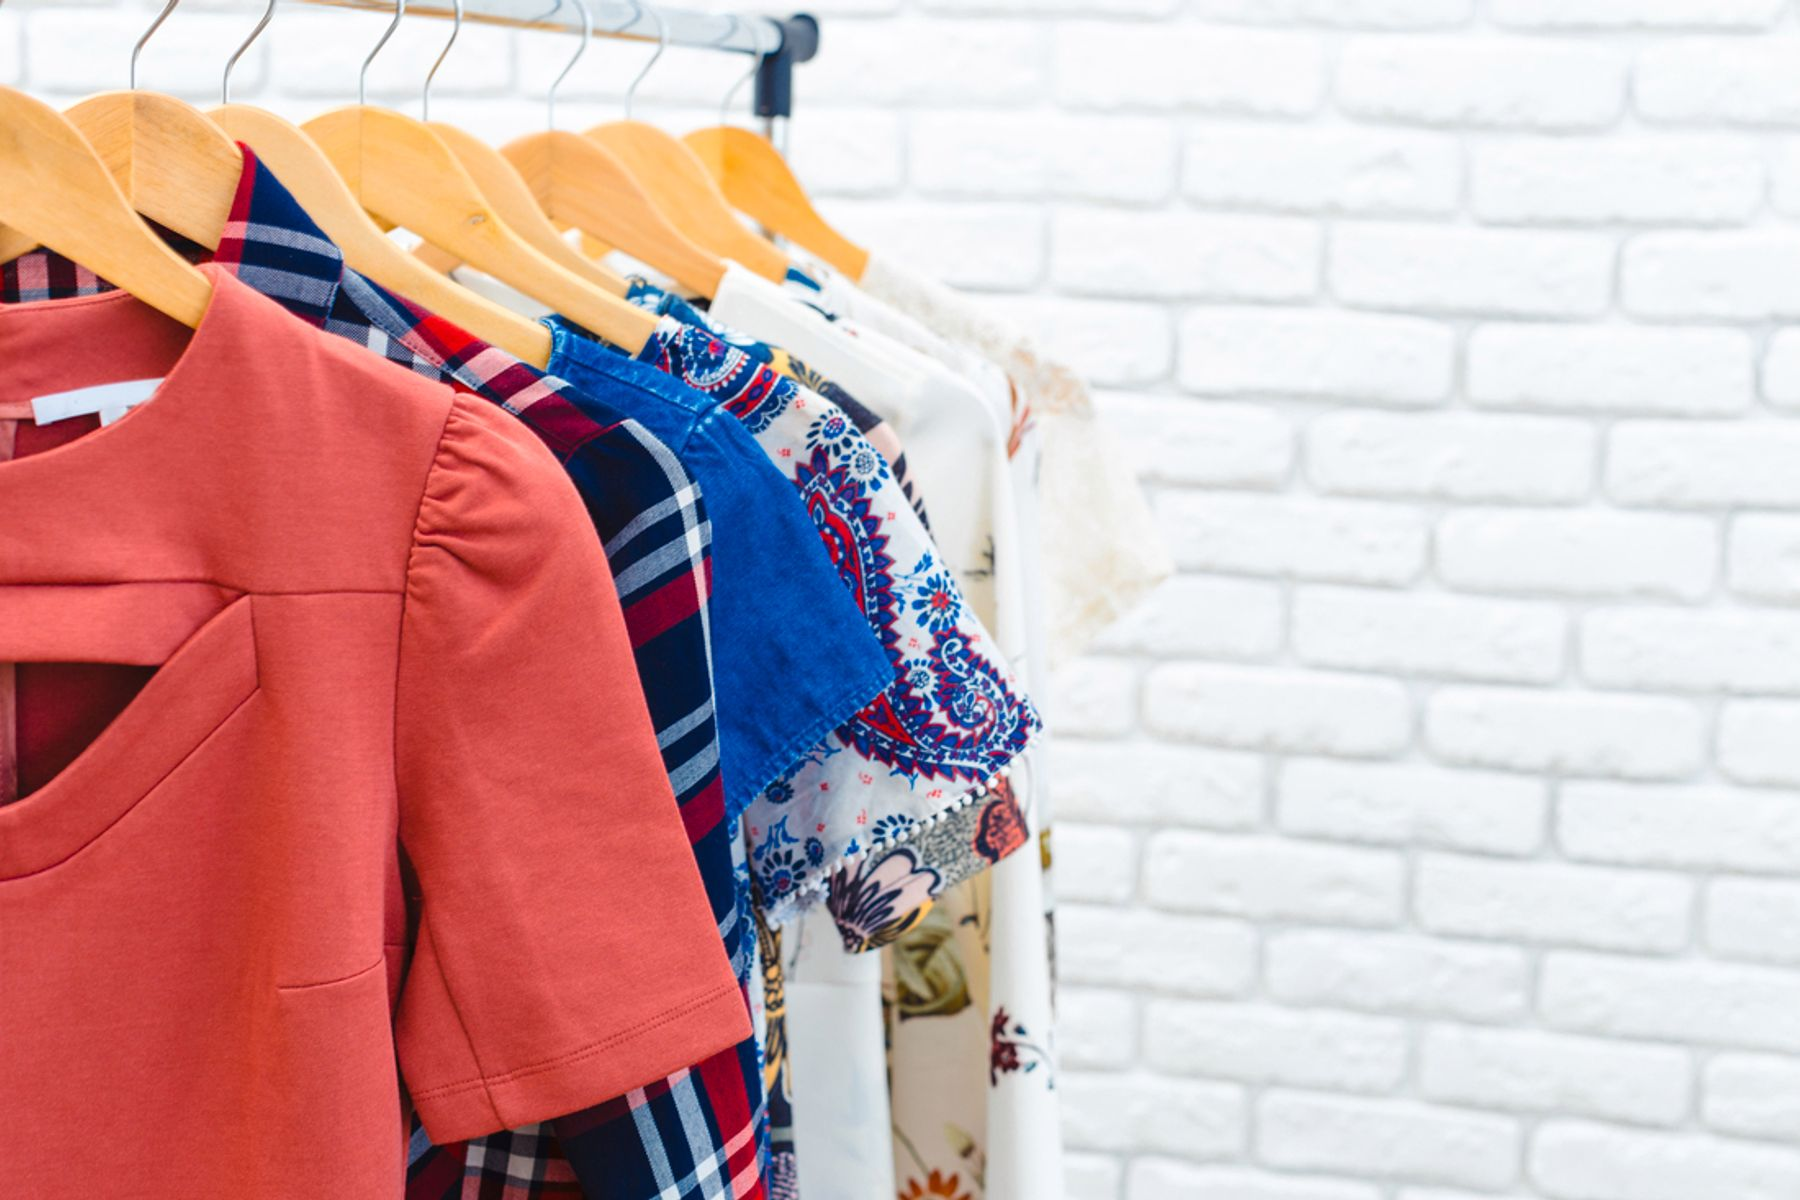 Designer Clothes for Washing